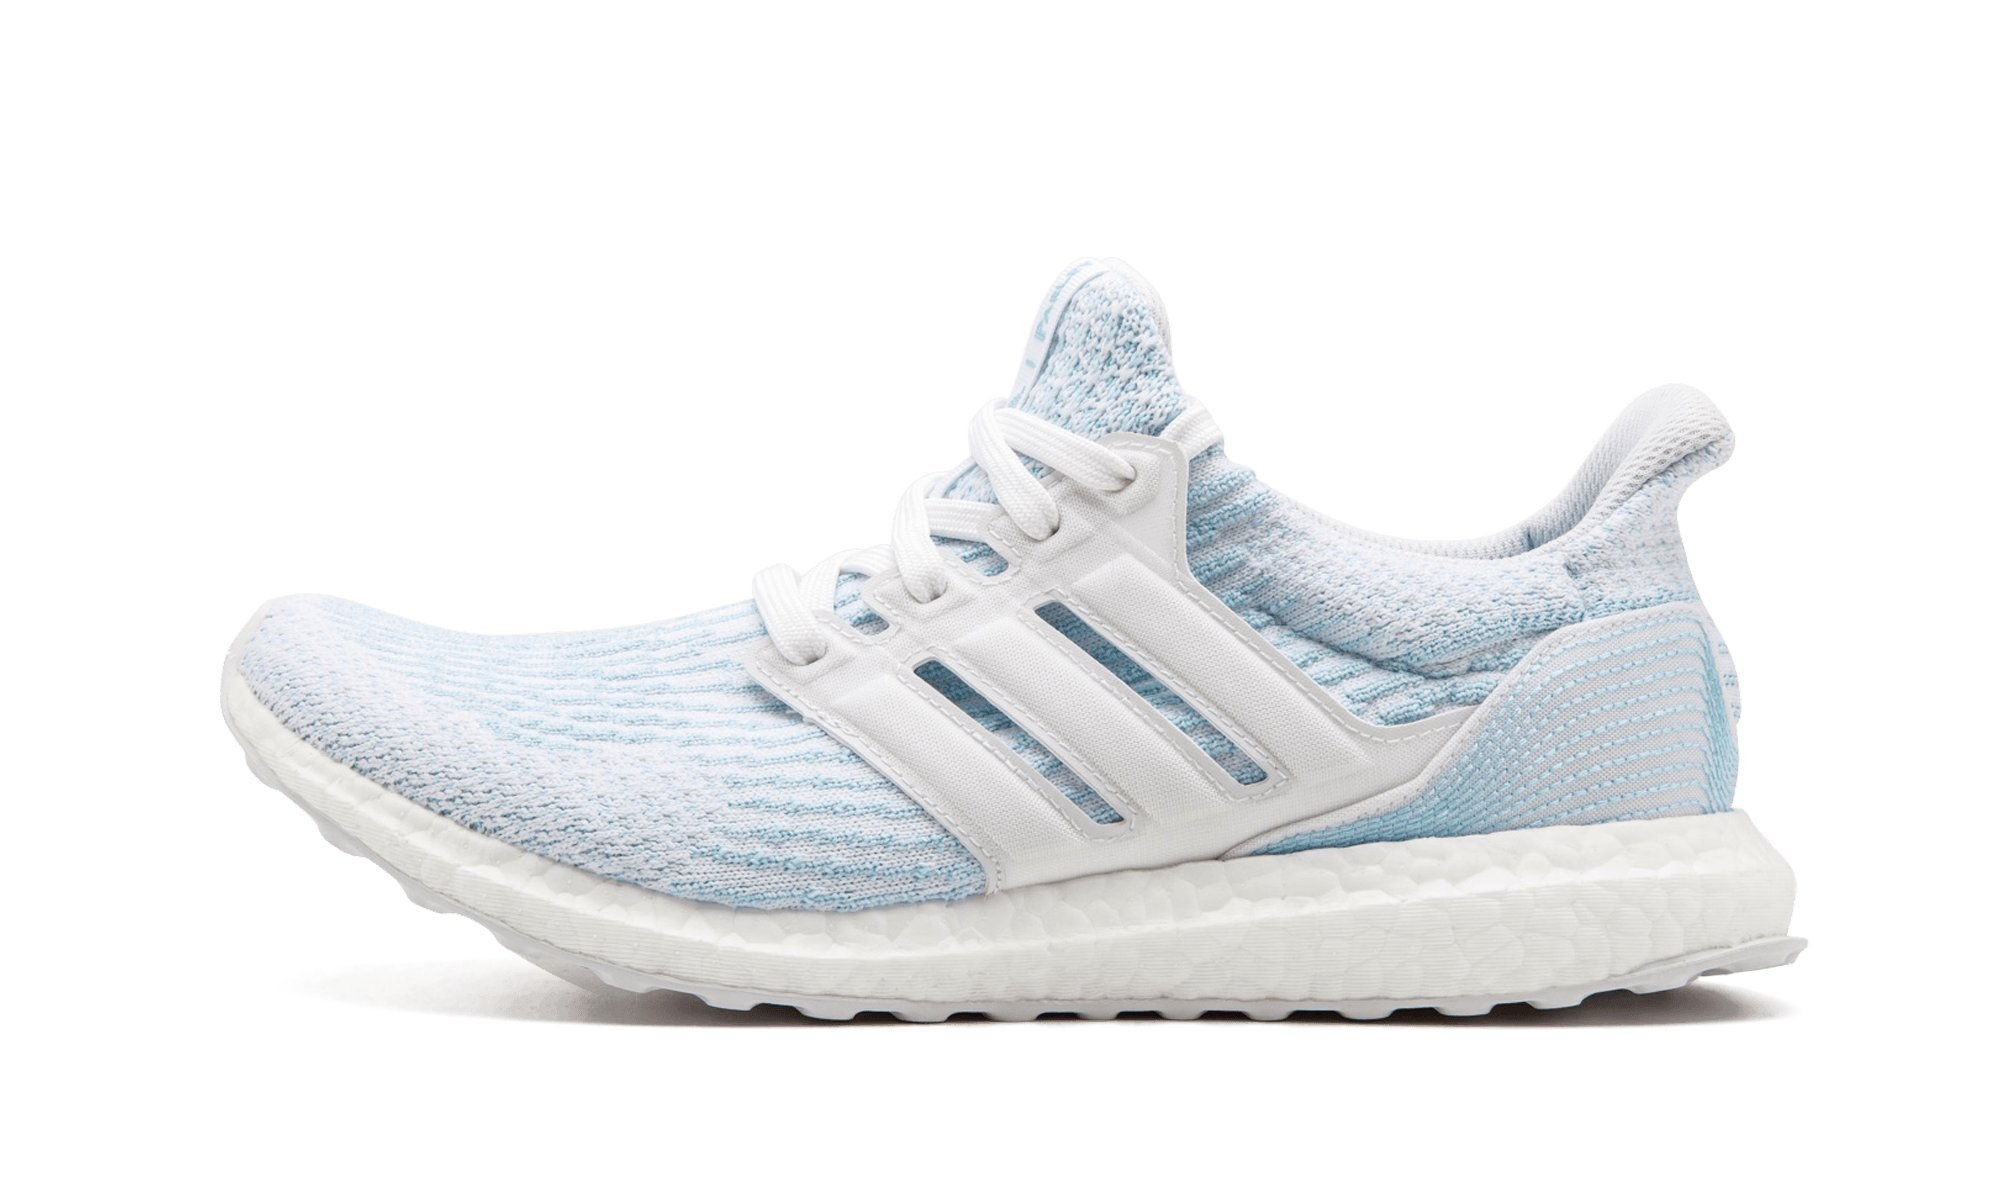 71b40bf0ed7 Galleon - Adidas Ultraboost 3.0 Parley Shoe - Men s Running 4 Cloud White Icey  Blue